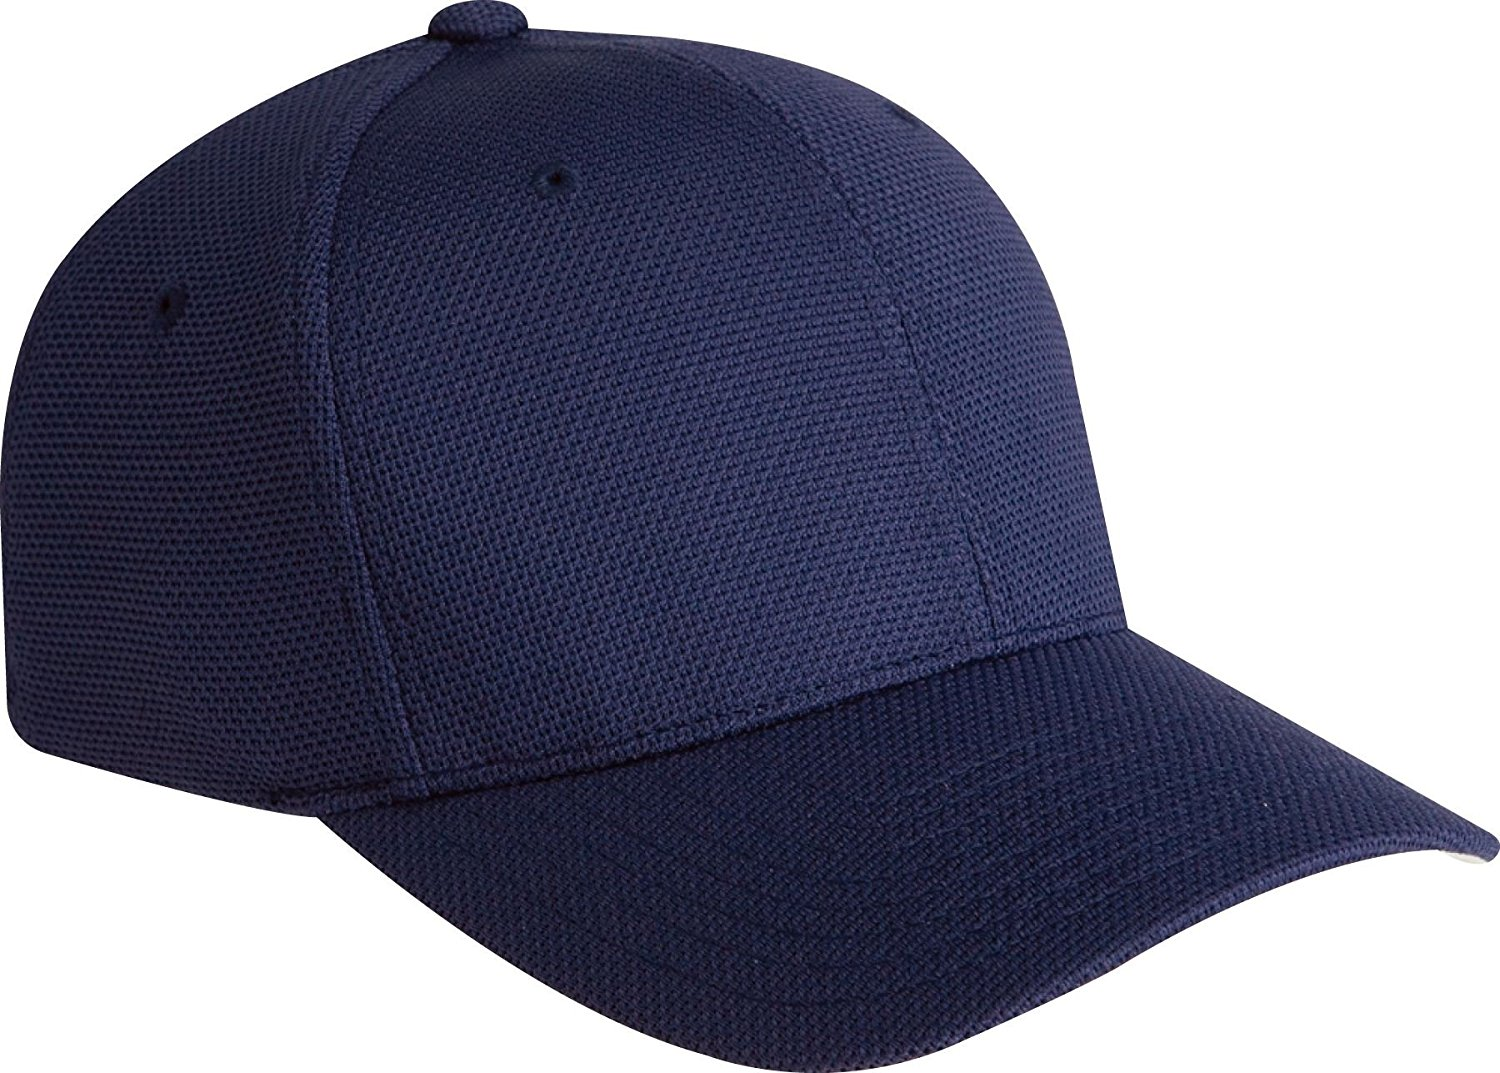 5c0babe135476 Get Quotations · Flexfit by Yupoong-Headwear-Baseball Caps-Flexfit cool and  dry piqué mesh